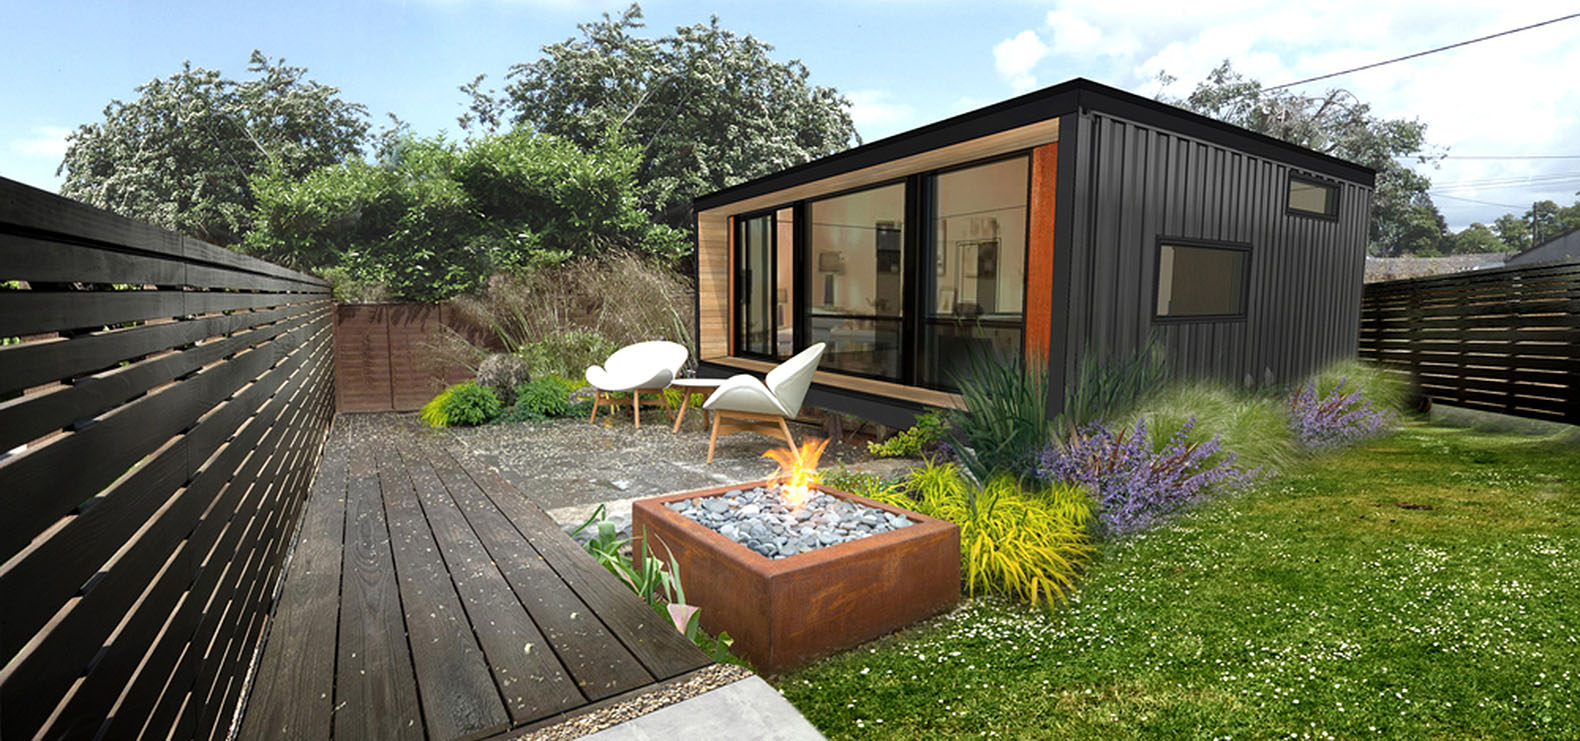 Combine Small Prefab Homes from Used Container with Minimalist Patio using White Chairs and Side Table